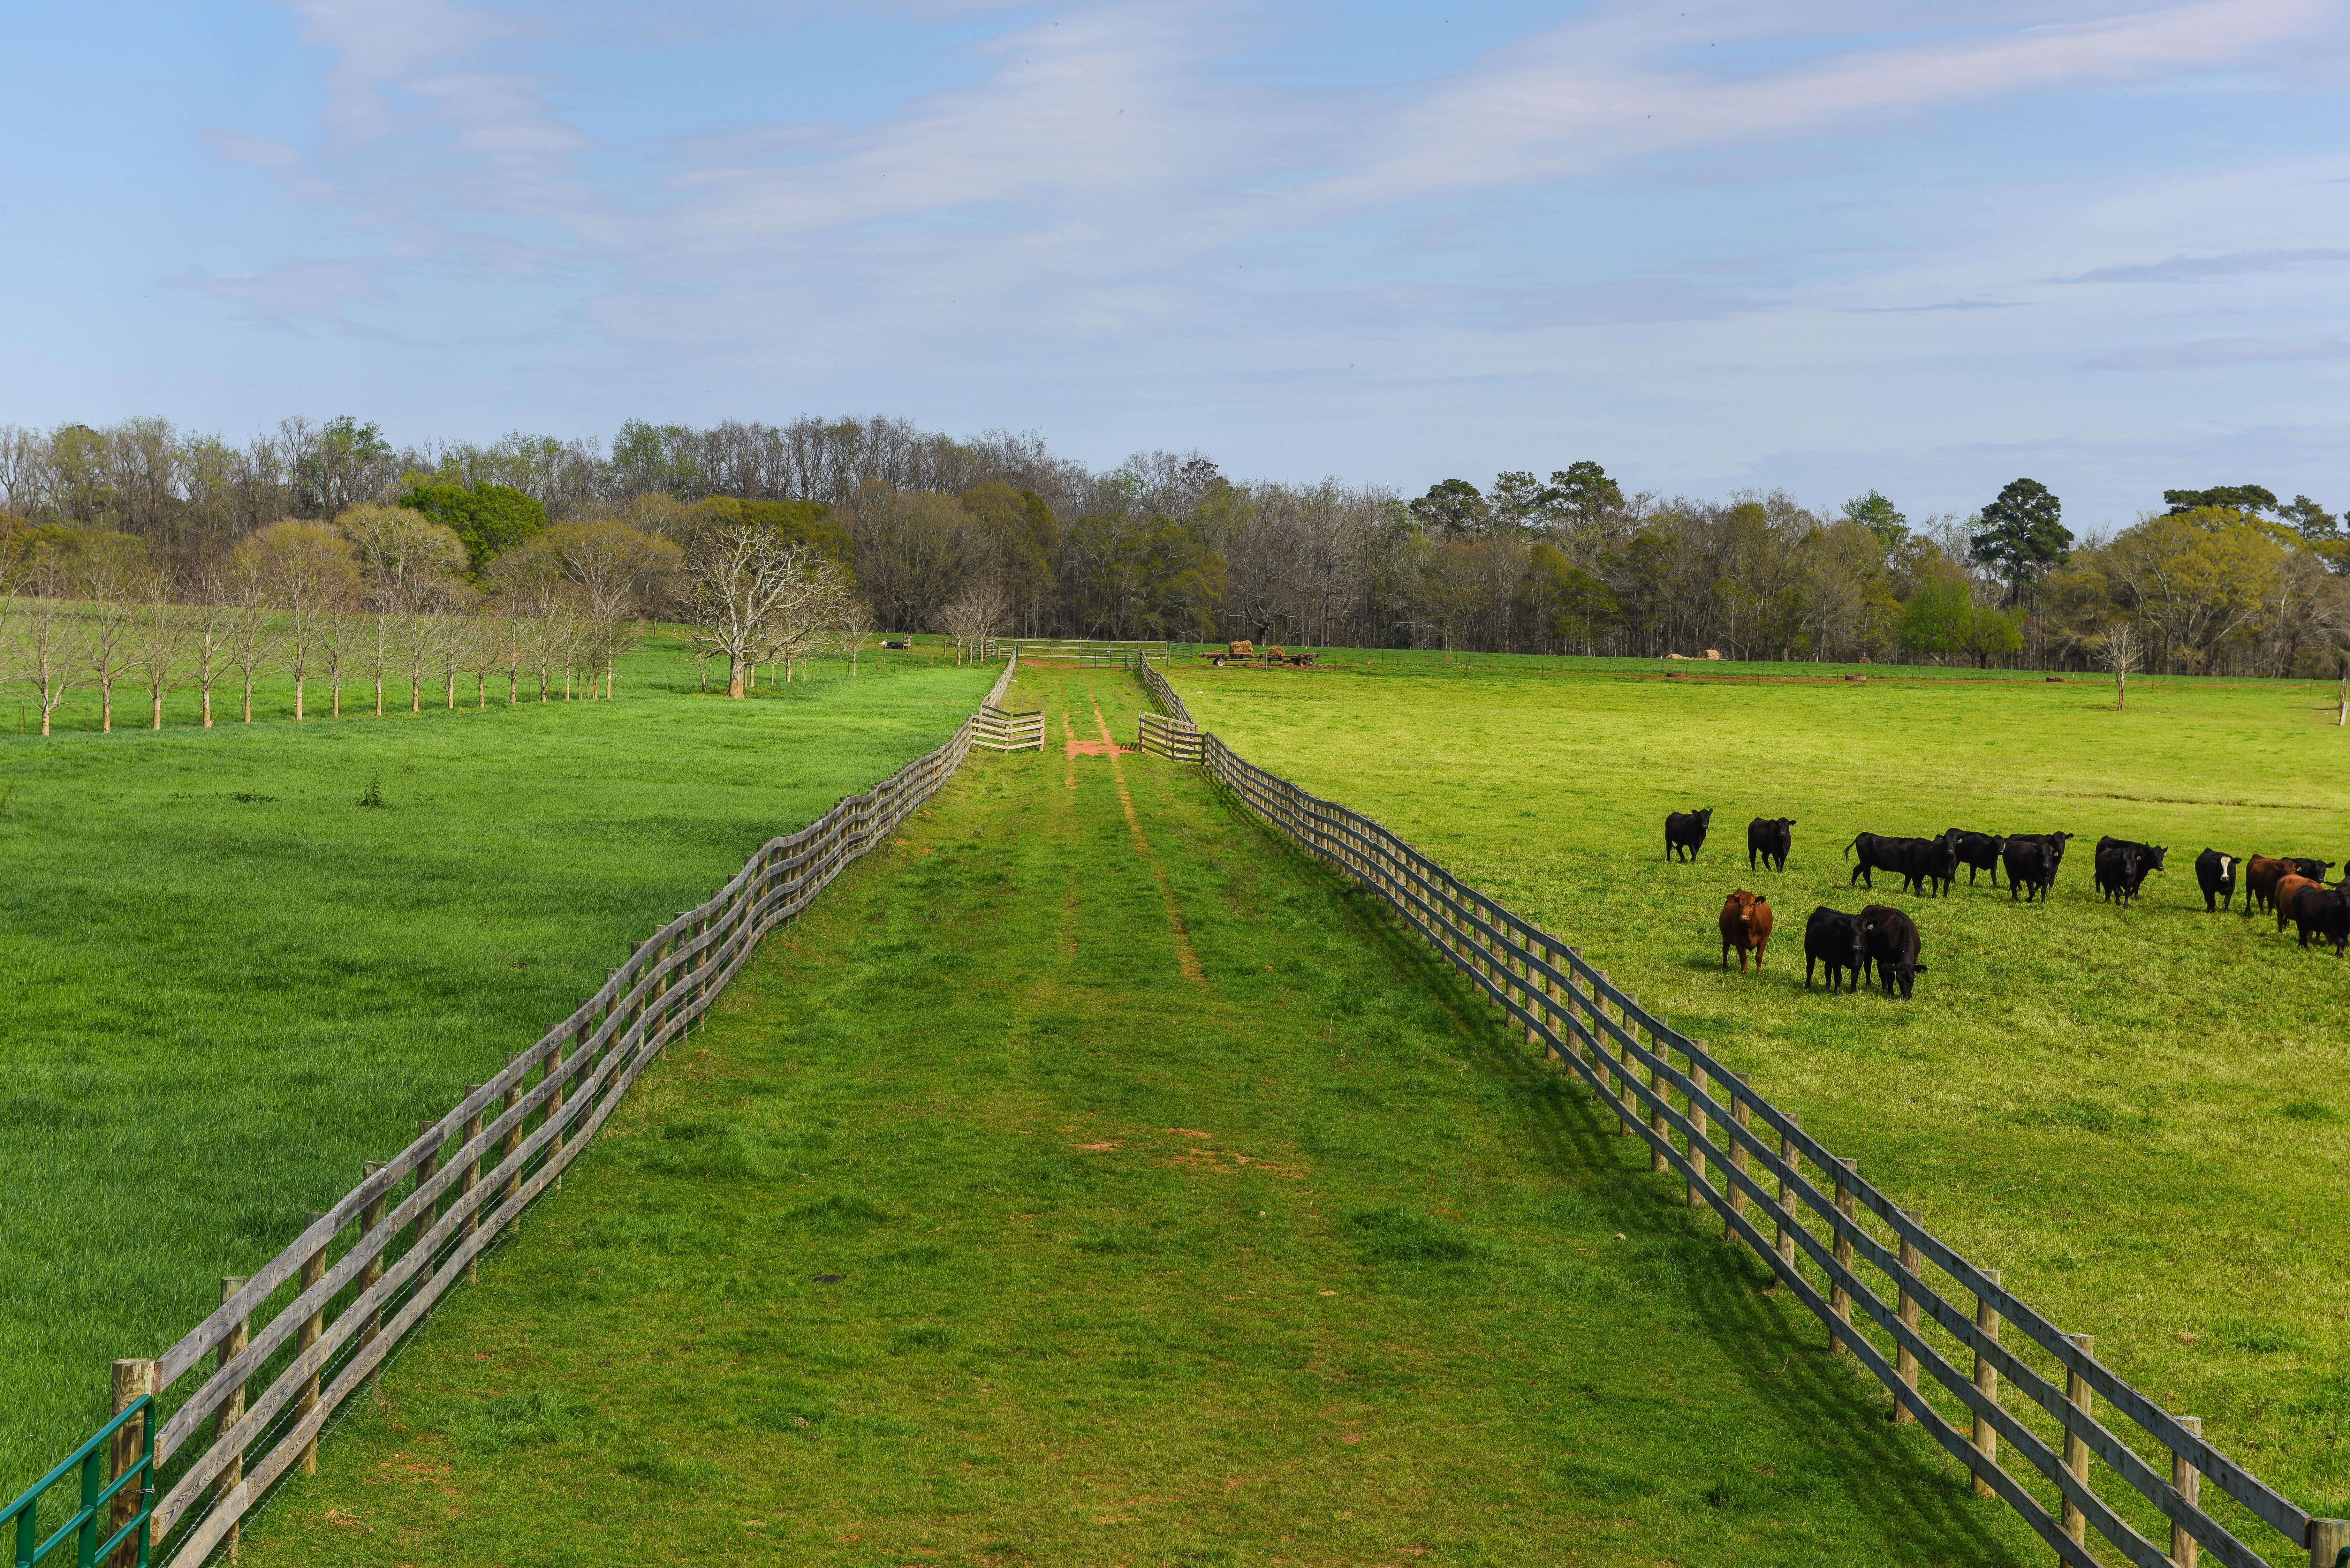 Pasture and grassfed cattle